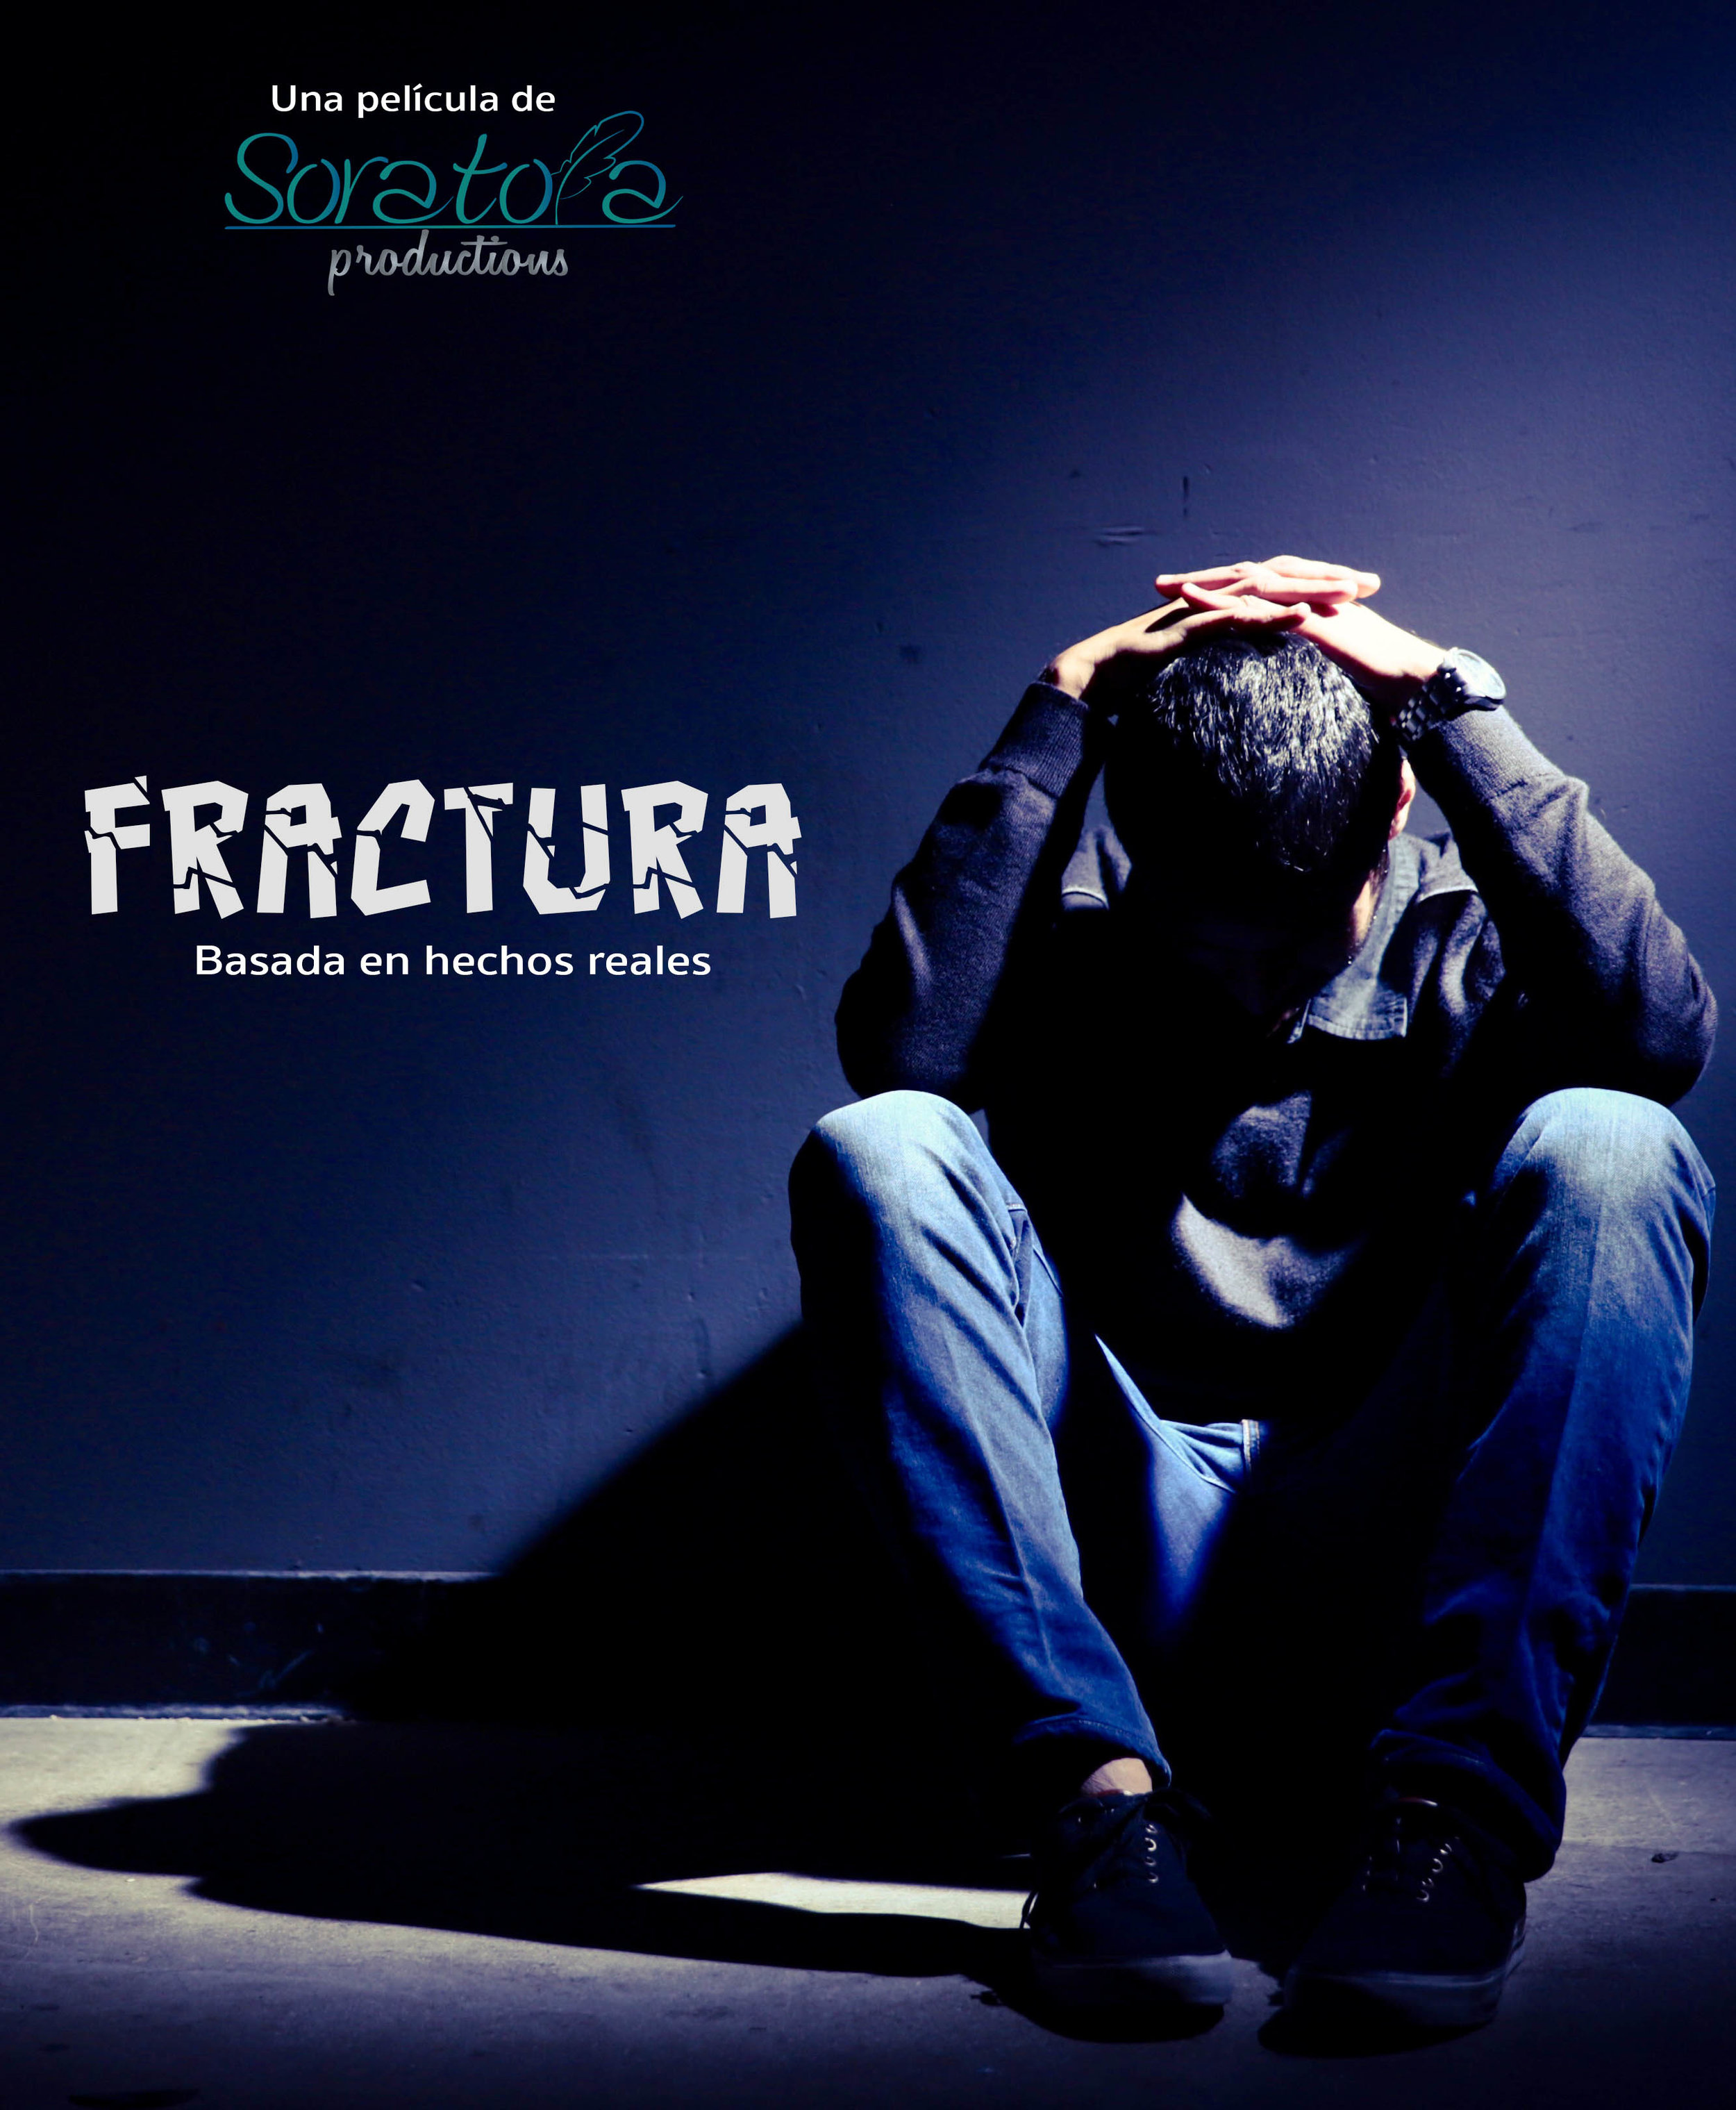 FRACTURA (In Development)Fracture - (Largometraje/Feature Film)Credit: Writer/ DirectorGenre: Drama/ThrillerSynopsis:En un país sin gobierno, cuatro jóvenes son confundidos con criminales y secuestrados accidentalmente por uno de los cárteles mas grandes y poderosos de México.(In a country with not government, four young innocent men are kidnapped by mistake by one of the biggest drugs cartels of Mexico).Country: Mexico-USA